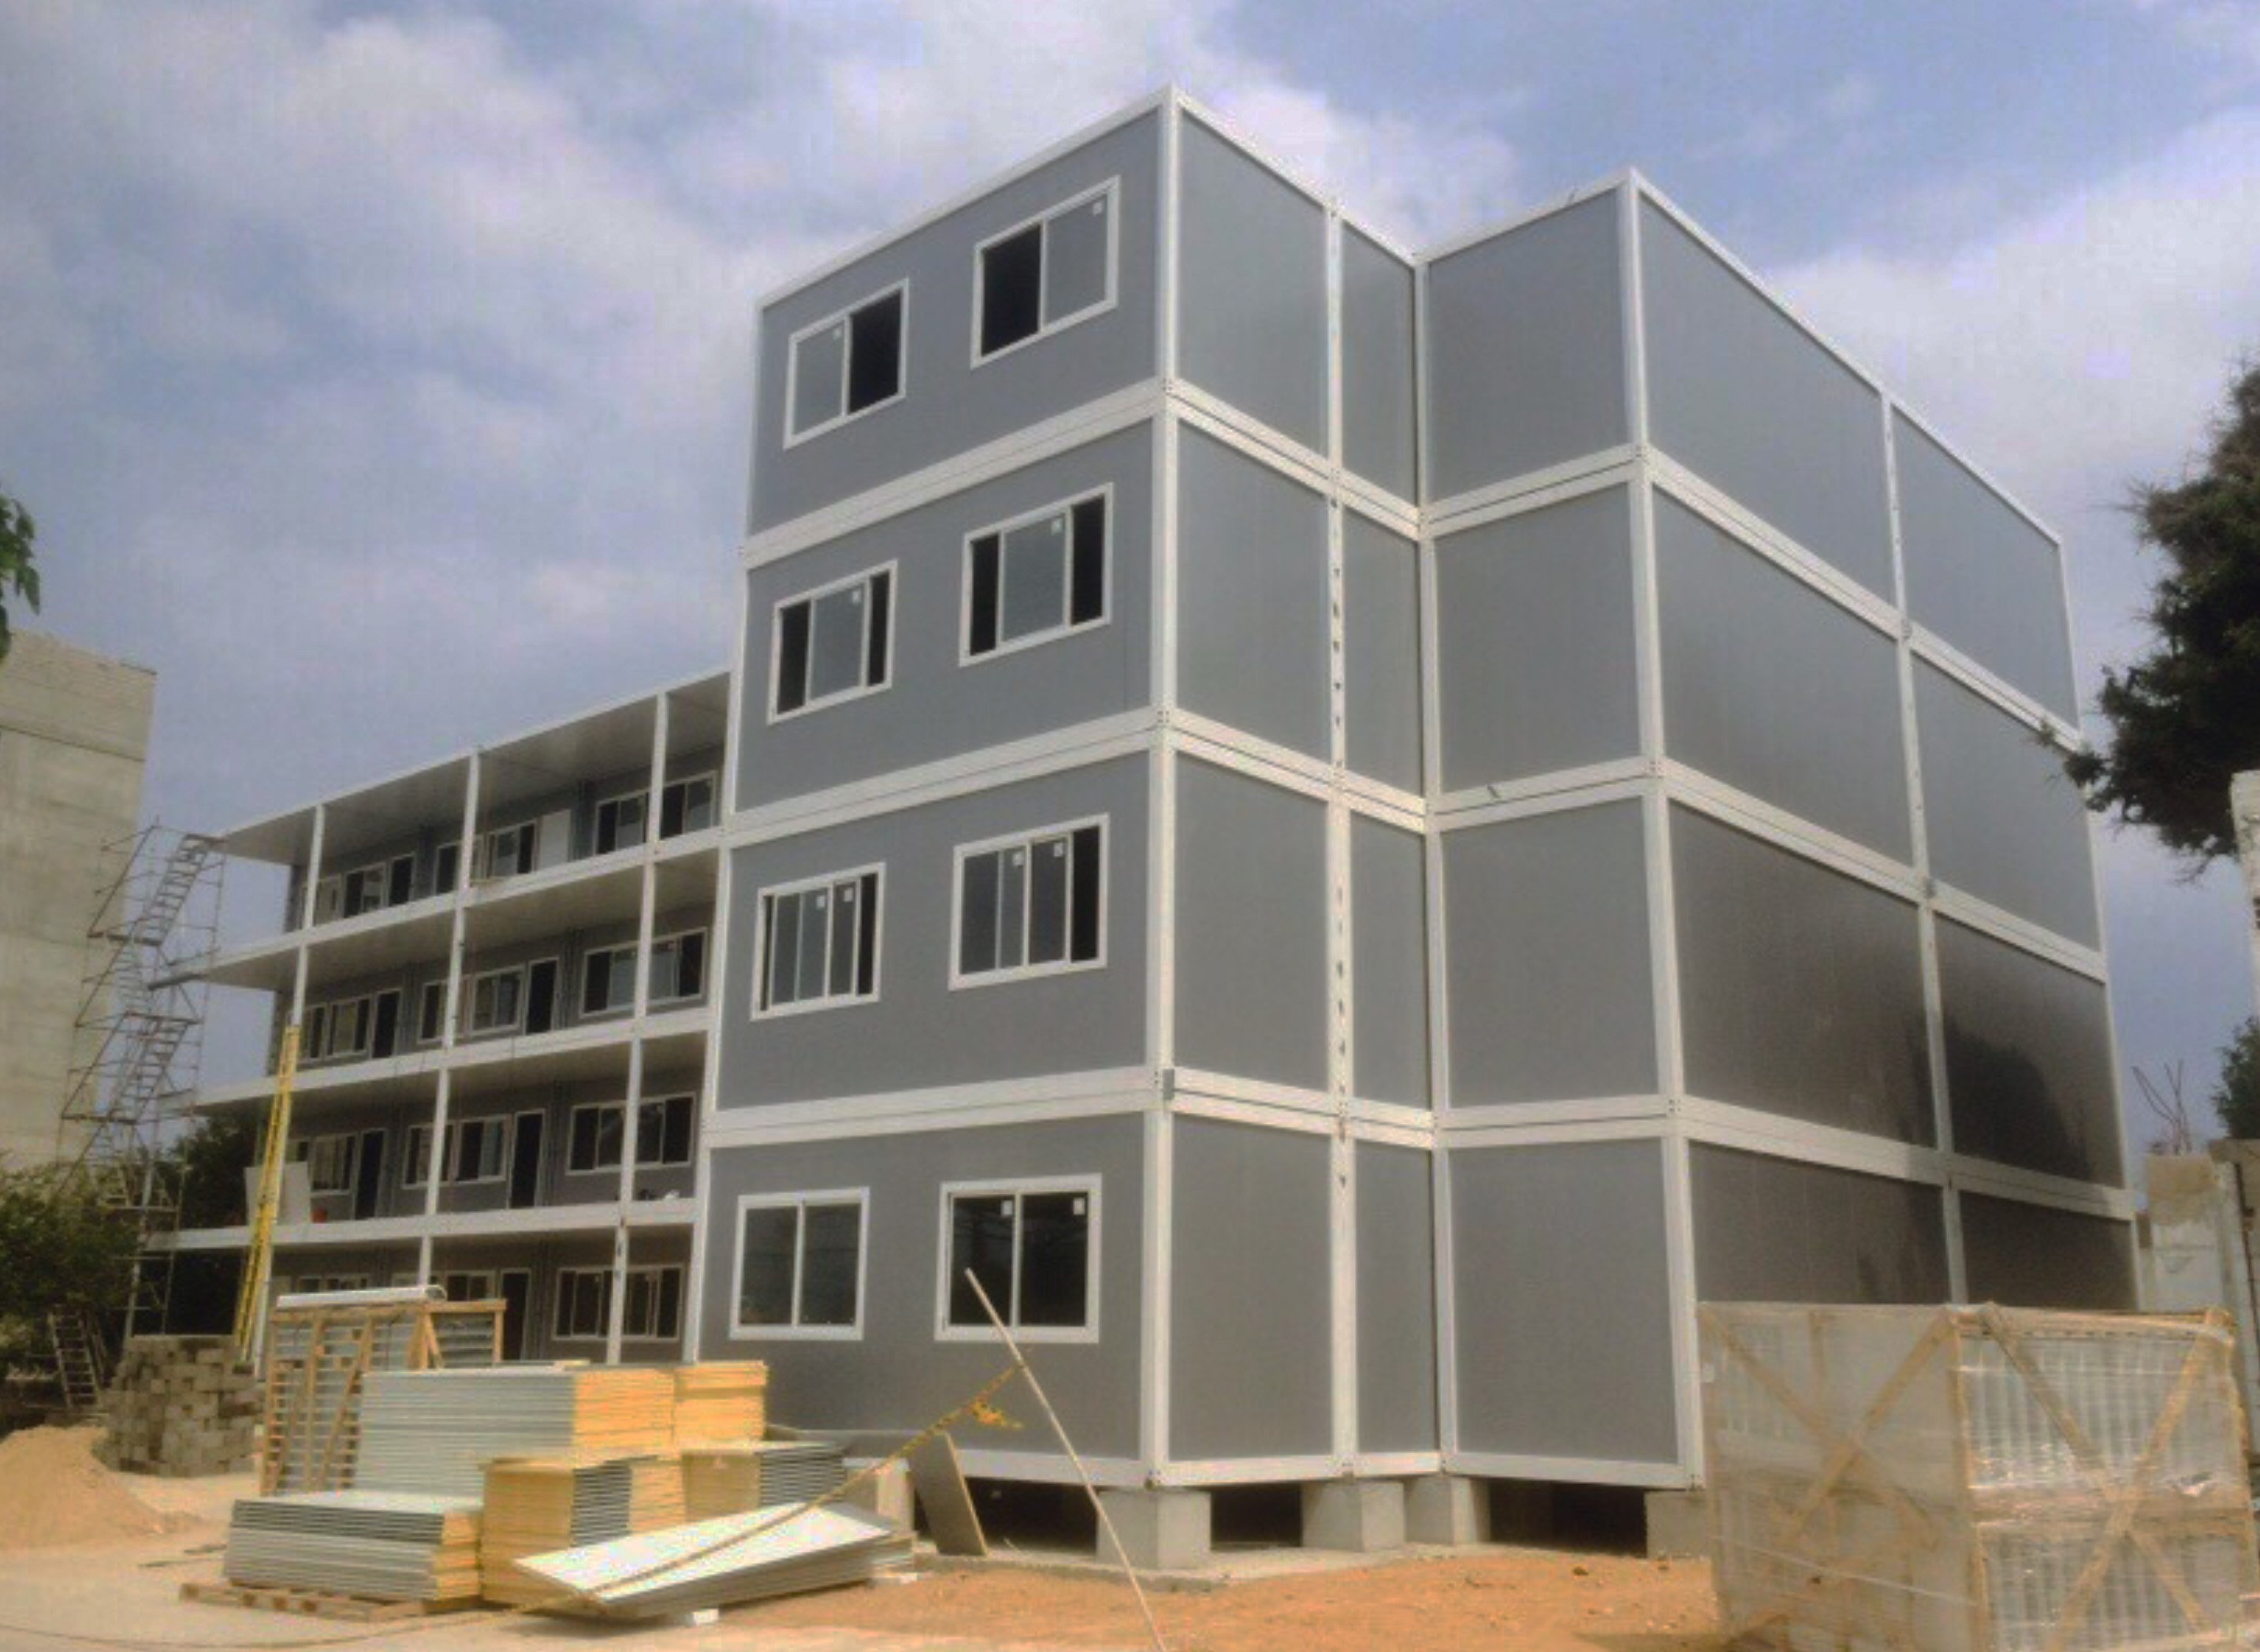 Four-storey 100% modular building (University of Barranquilla, Colombia)